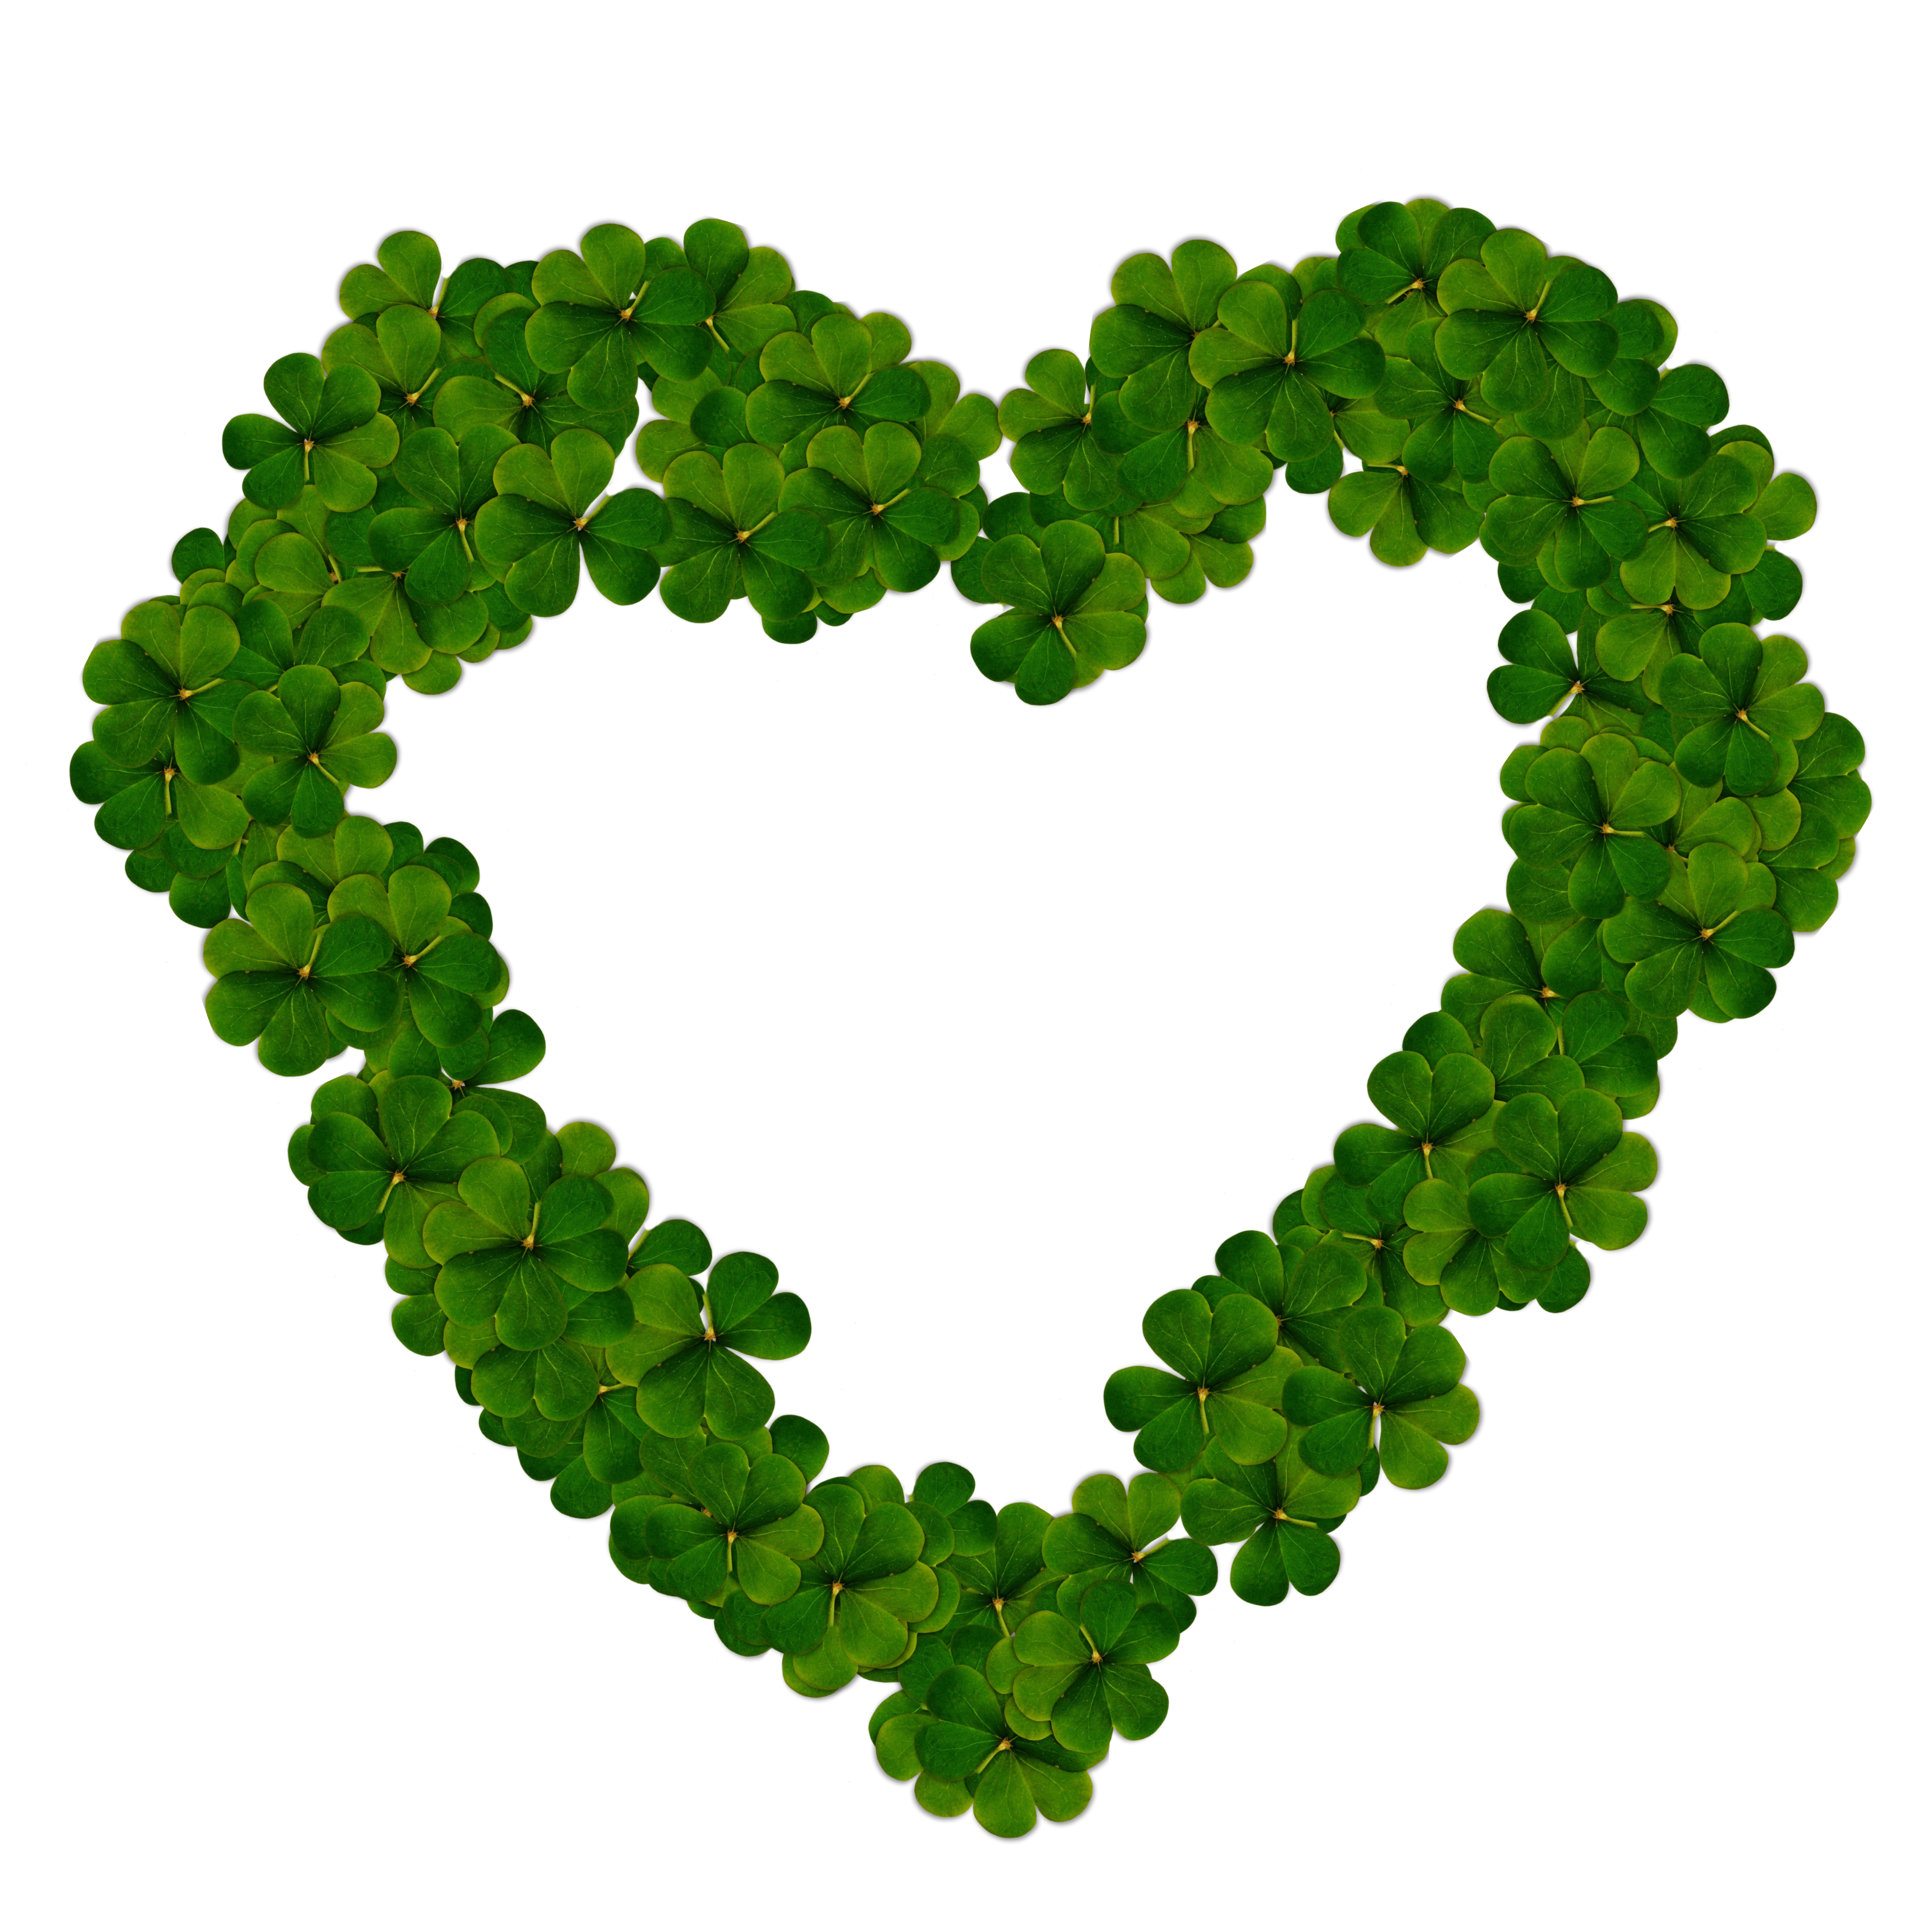 Clover Heart PNG Image